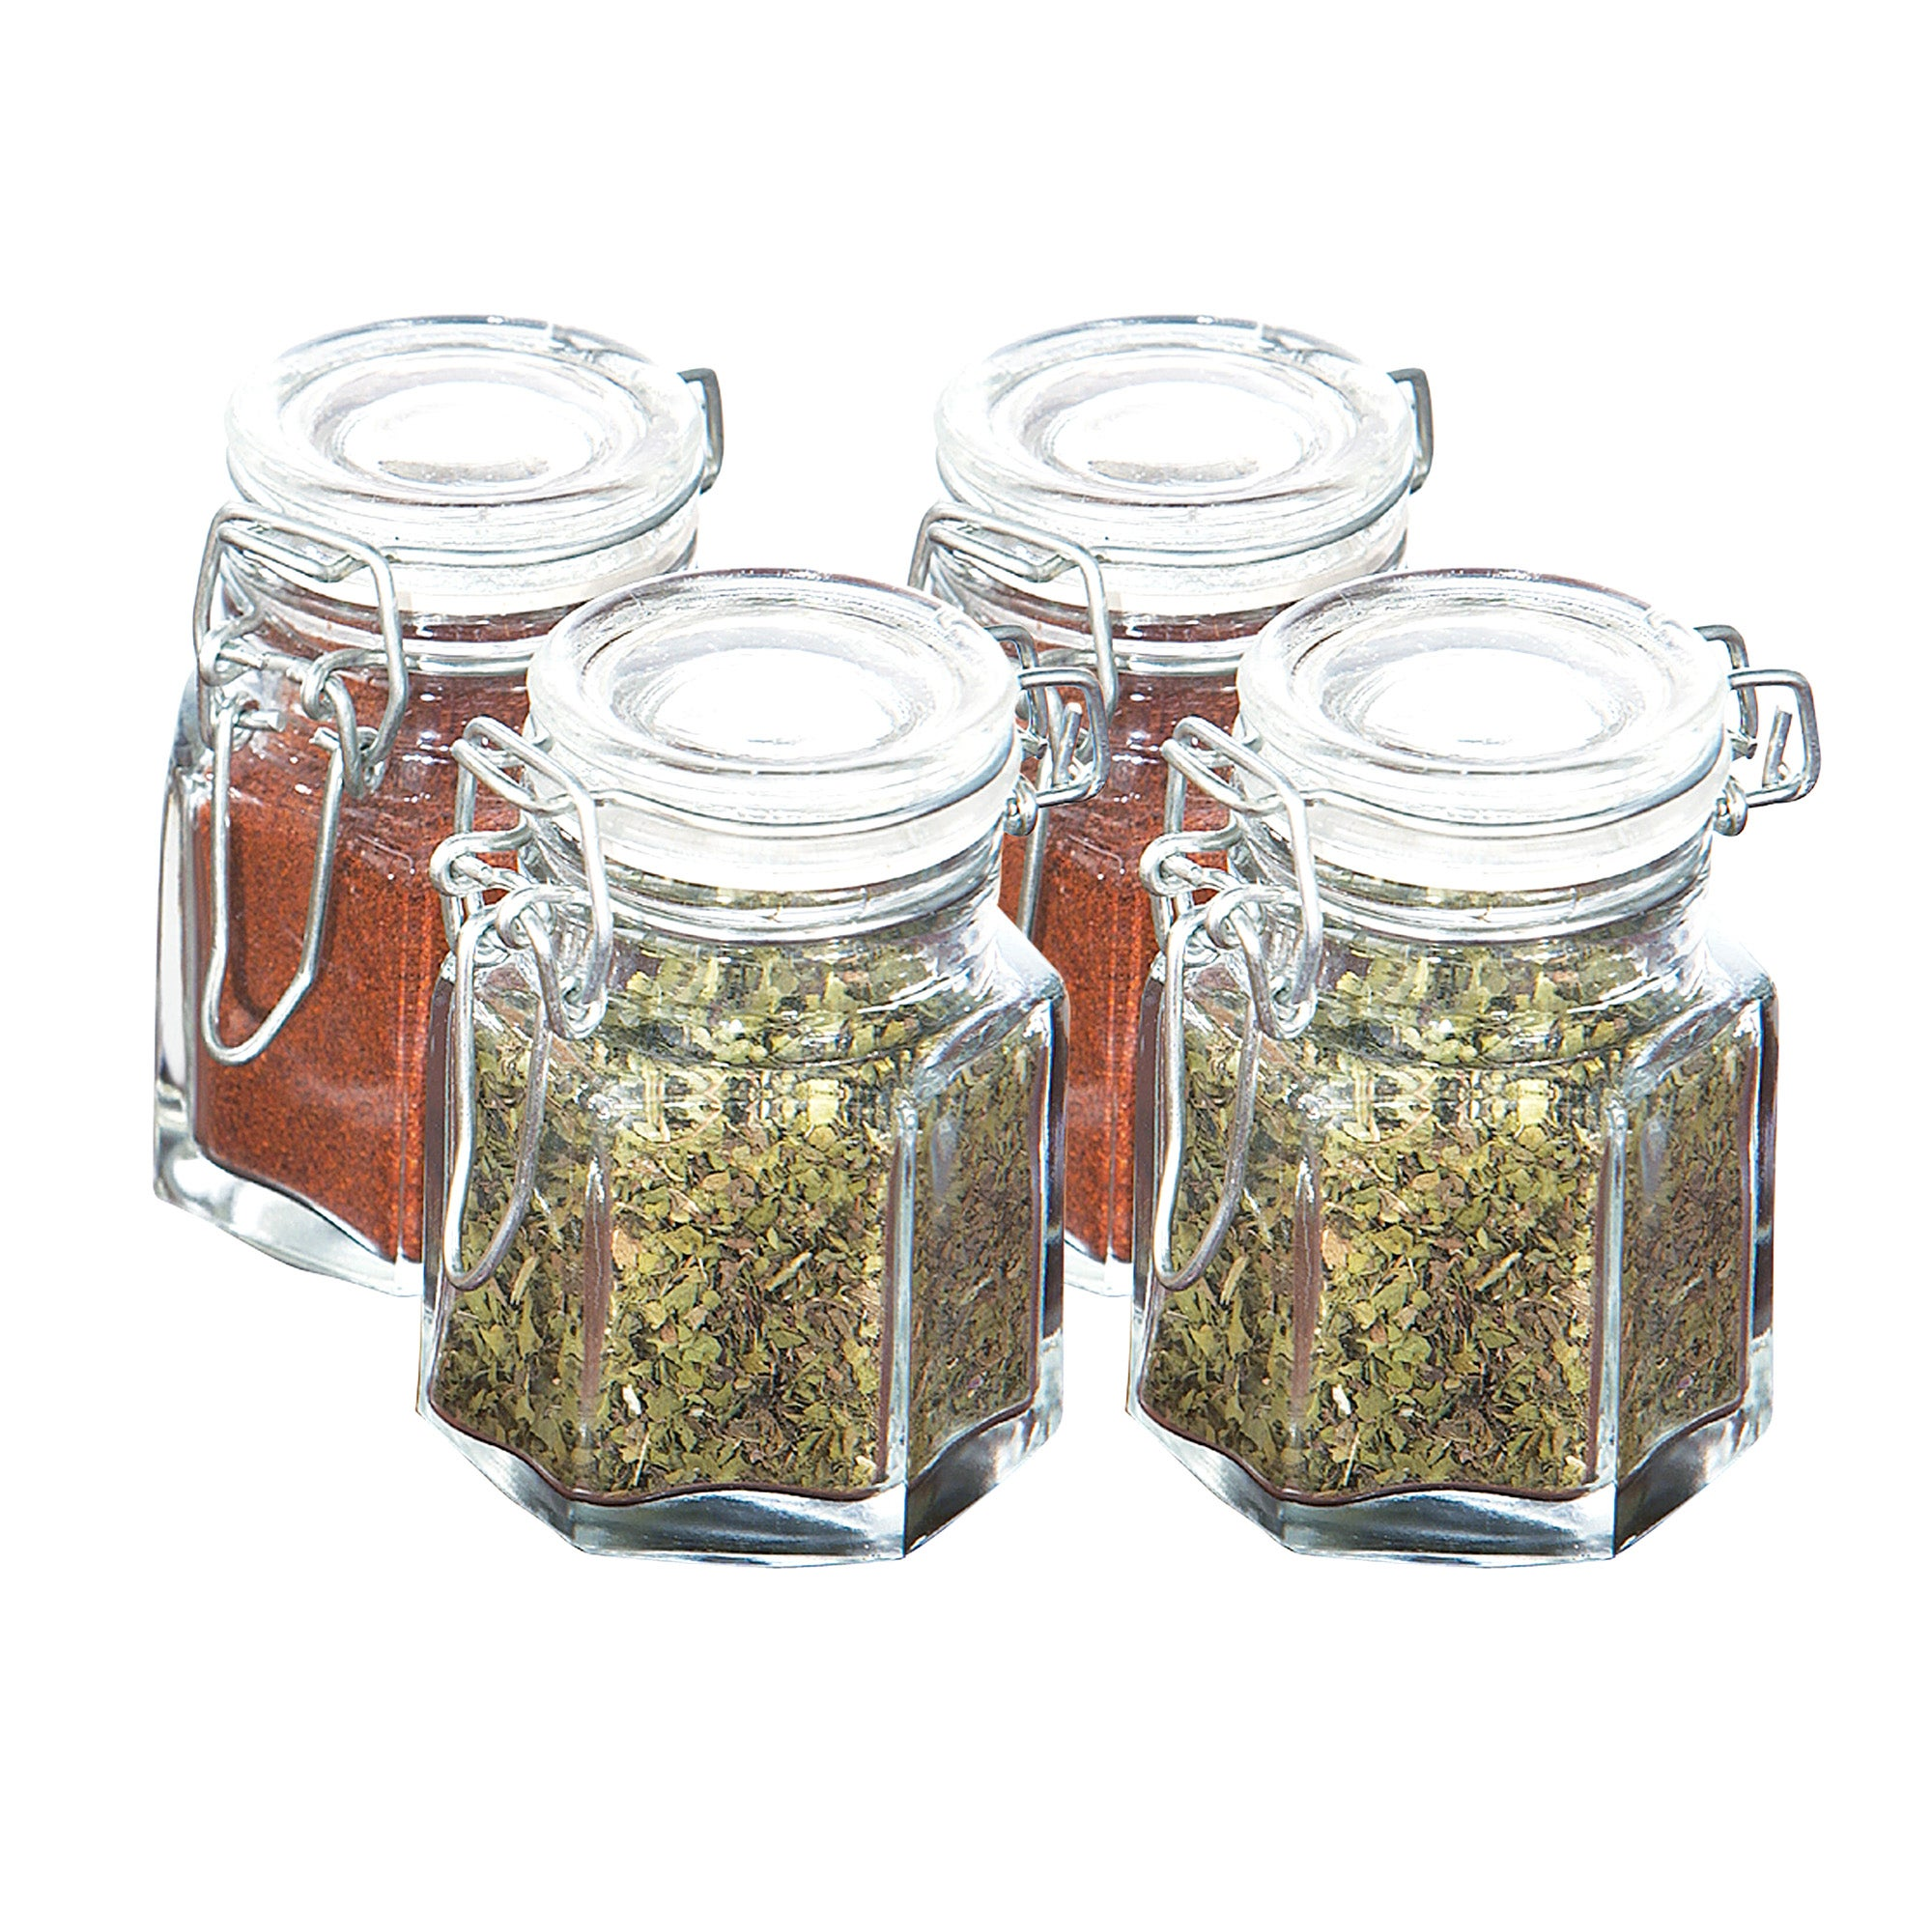 Set of Four Glass Clip Top Spice Jars